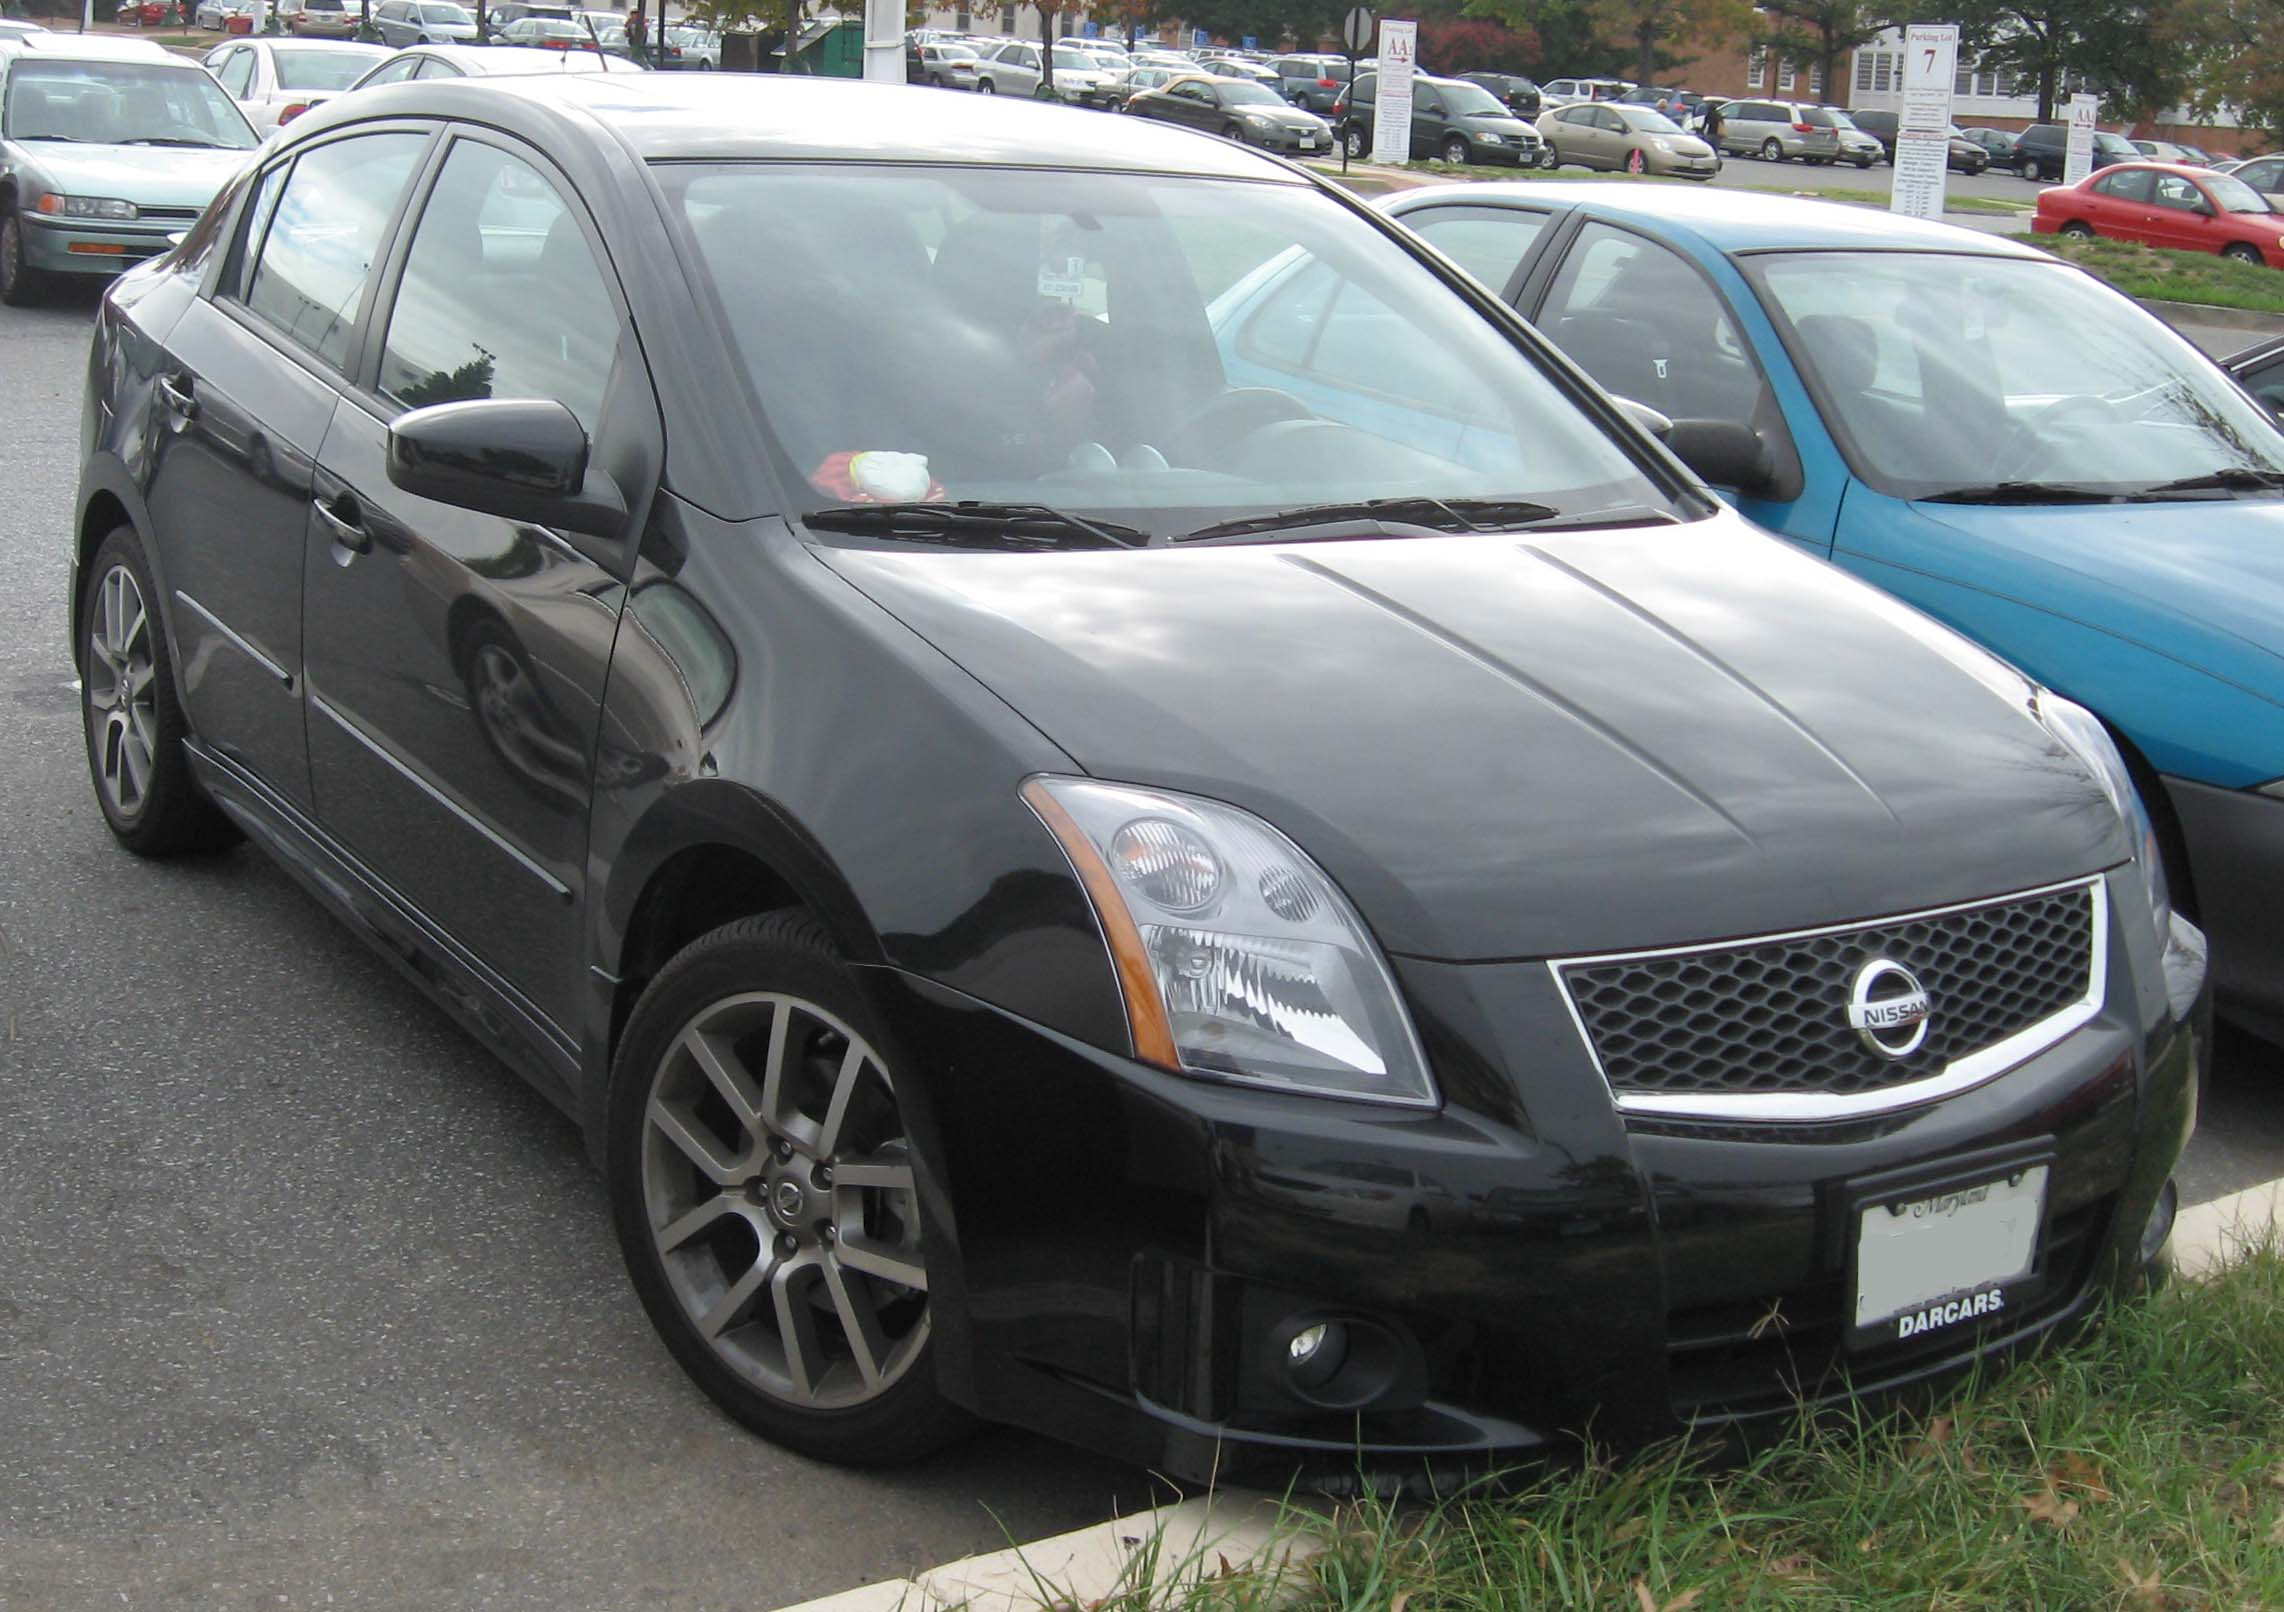 file:2008-nissan-sentra-se-r - wikimedia commons